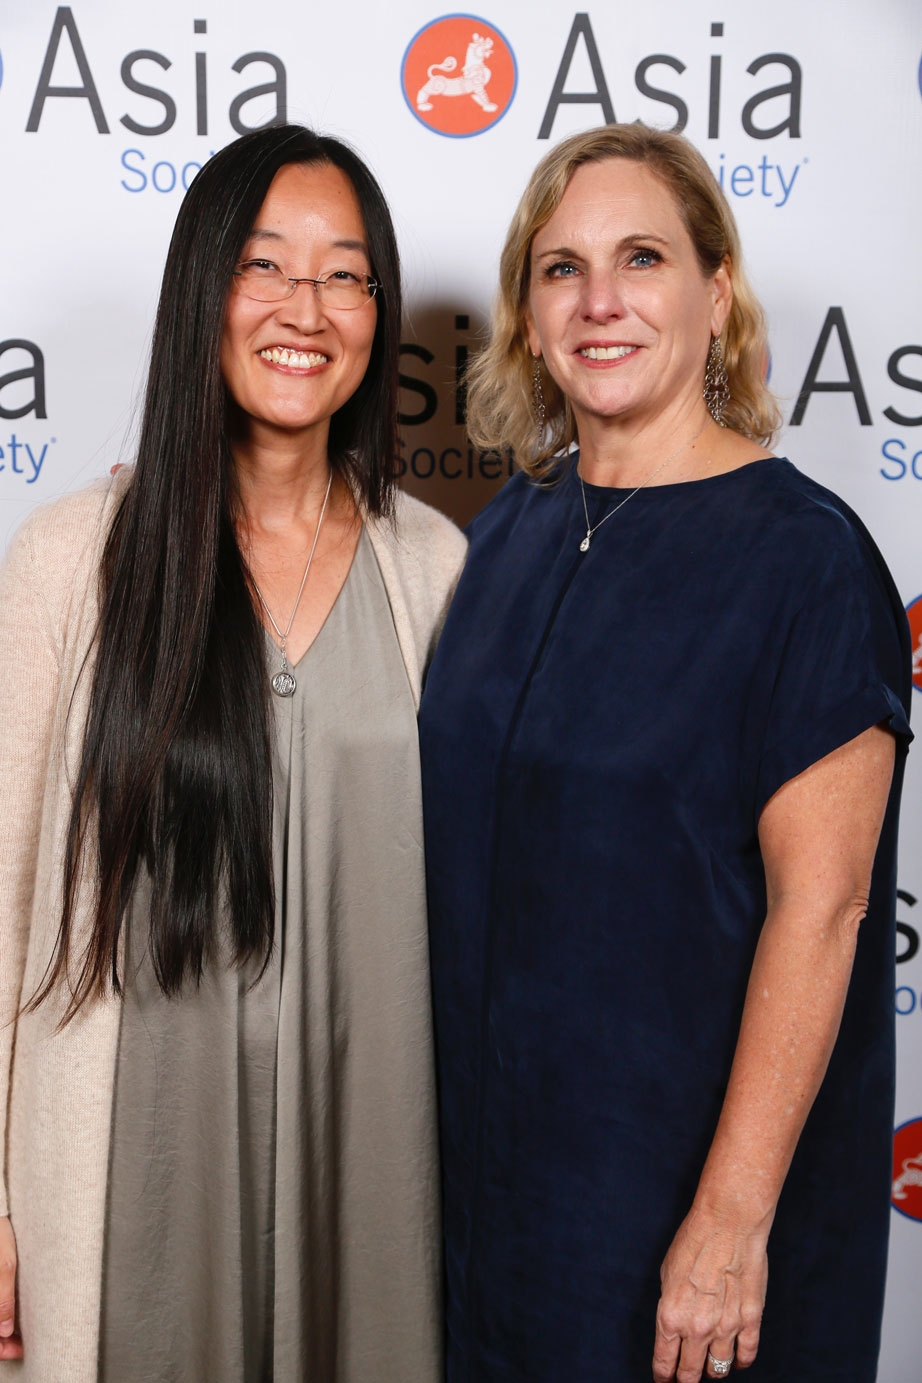 From left, Jennifer Yuh Nelson, Director Kung Fu Panda 3 and Melissa Cobb, Head of Studio and Chief Creative Officer Oriental DreamWorks arrive during the 2016 U.S.-China Film Gala Dinner held at the Millennium Biltmore Hotel on Wednesday, November 2, 2016, in Los Angeles, California.